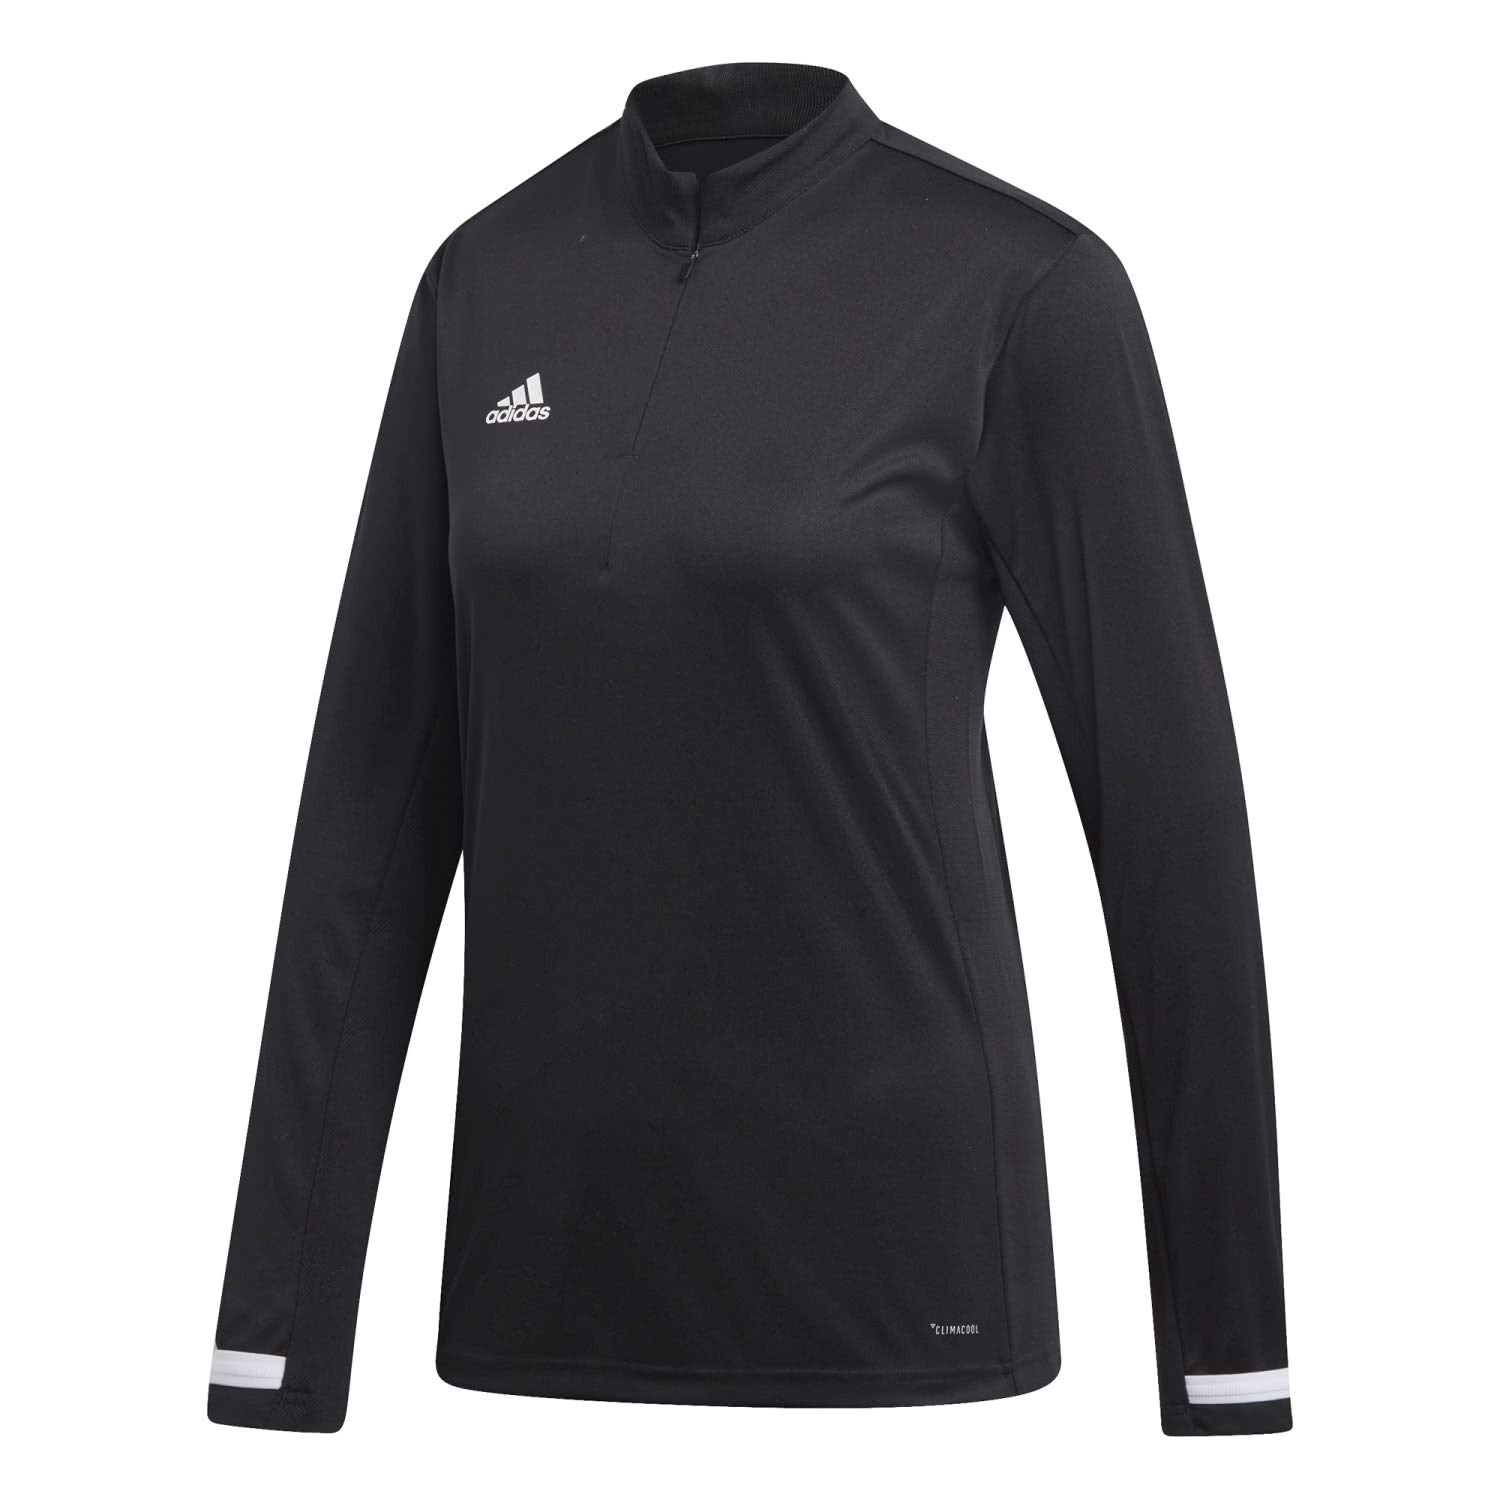 Adidas Damen T19 1 4 Ls W Long Sleeved T-Shirt